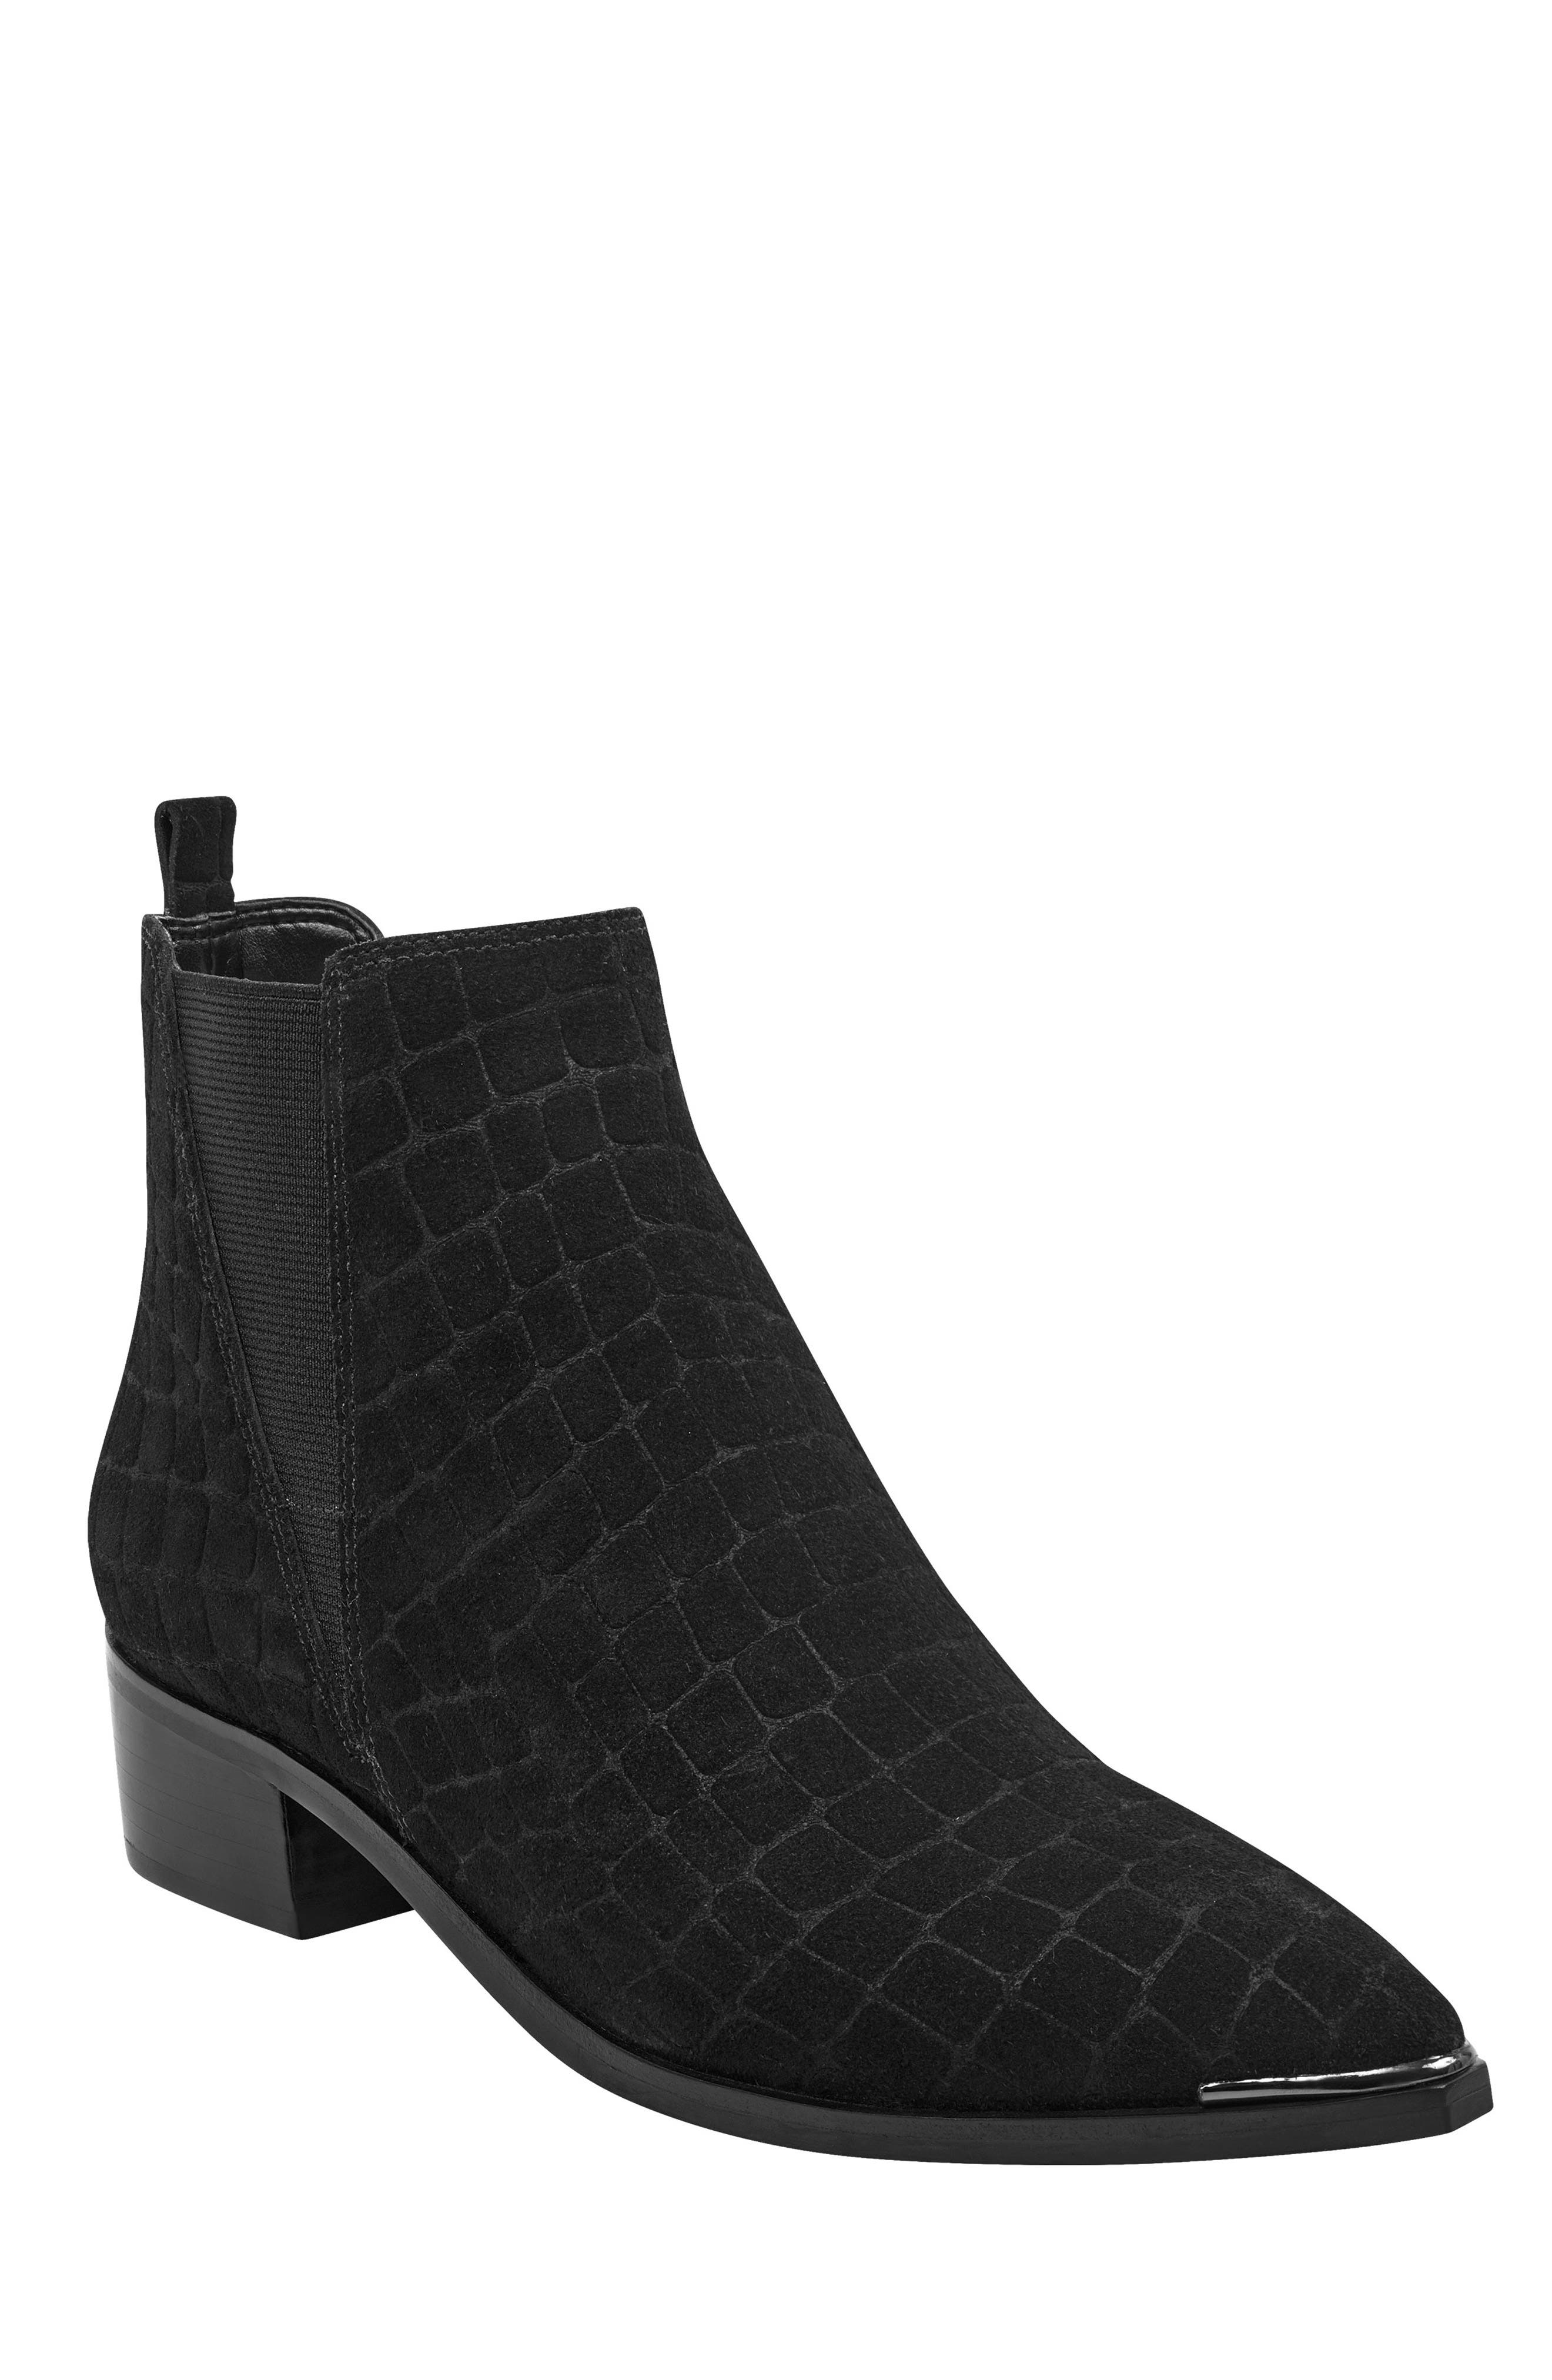 'Yale' Chelsea Boot,                         Main,                         color, BLACK CROC EMBOSSED SUEDE